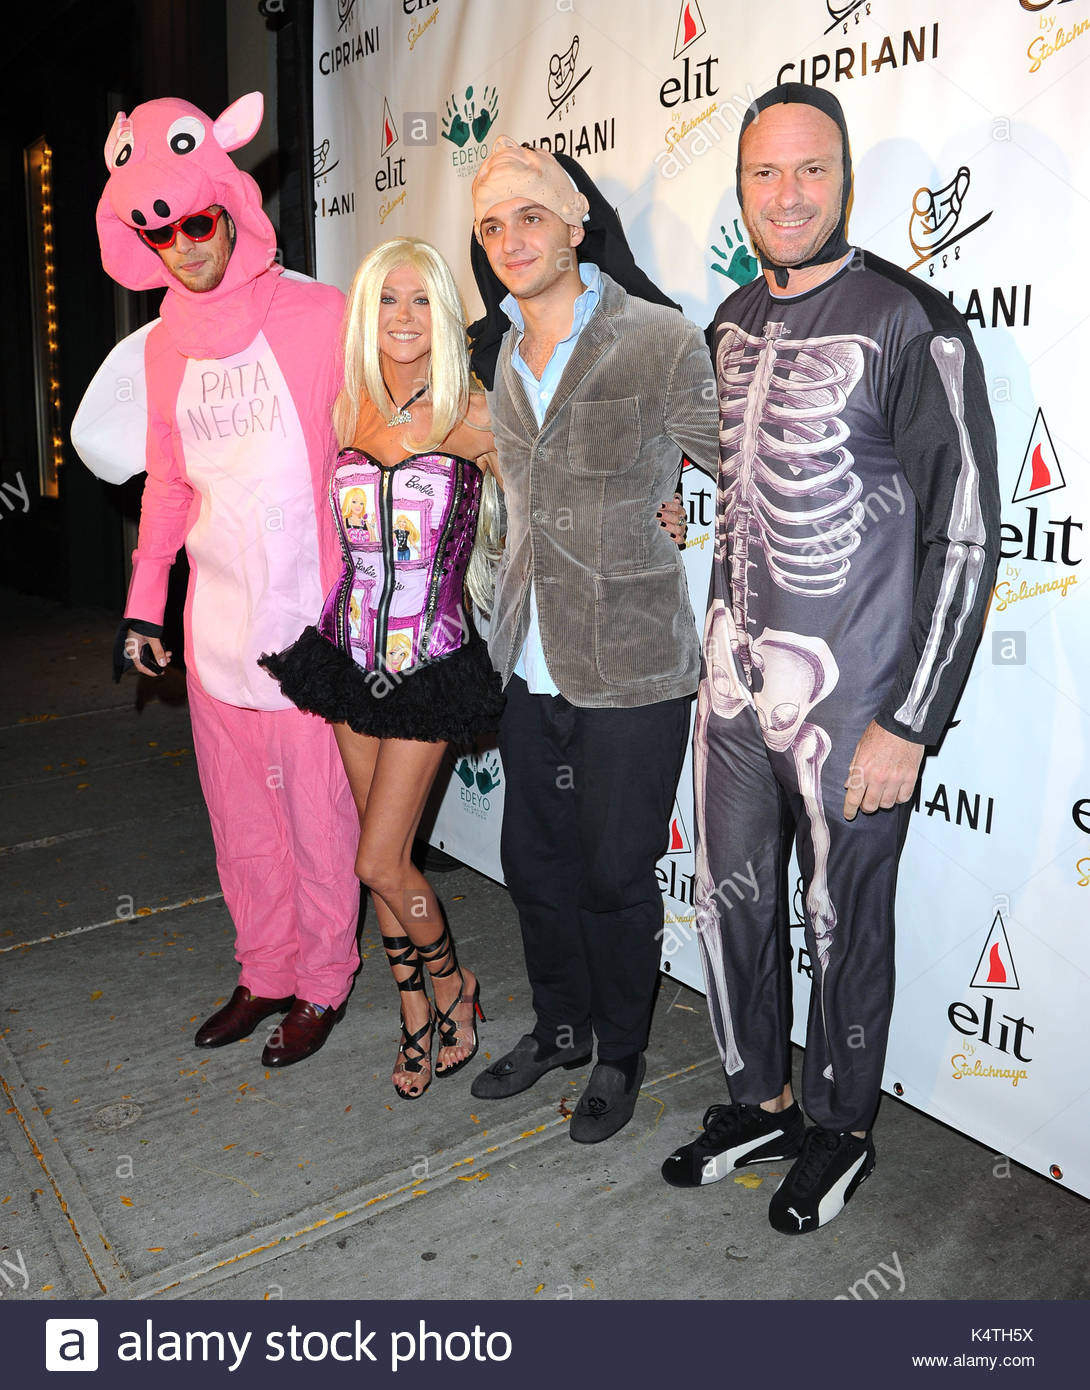 ignazio cipriani tara reid maggio cipriani and giuseppe cipriani celebrities at the halloween 2010 party held at cipriani downtown in new york city